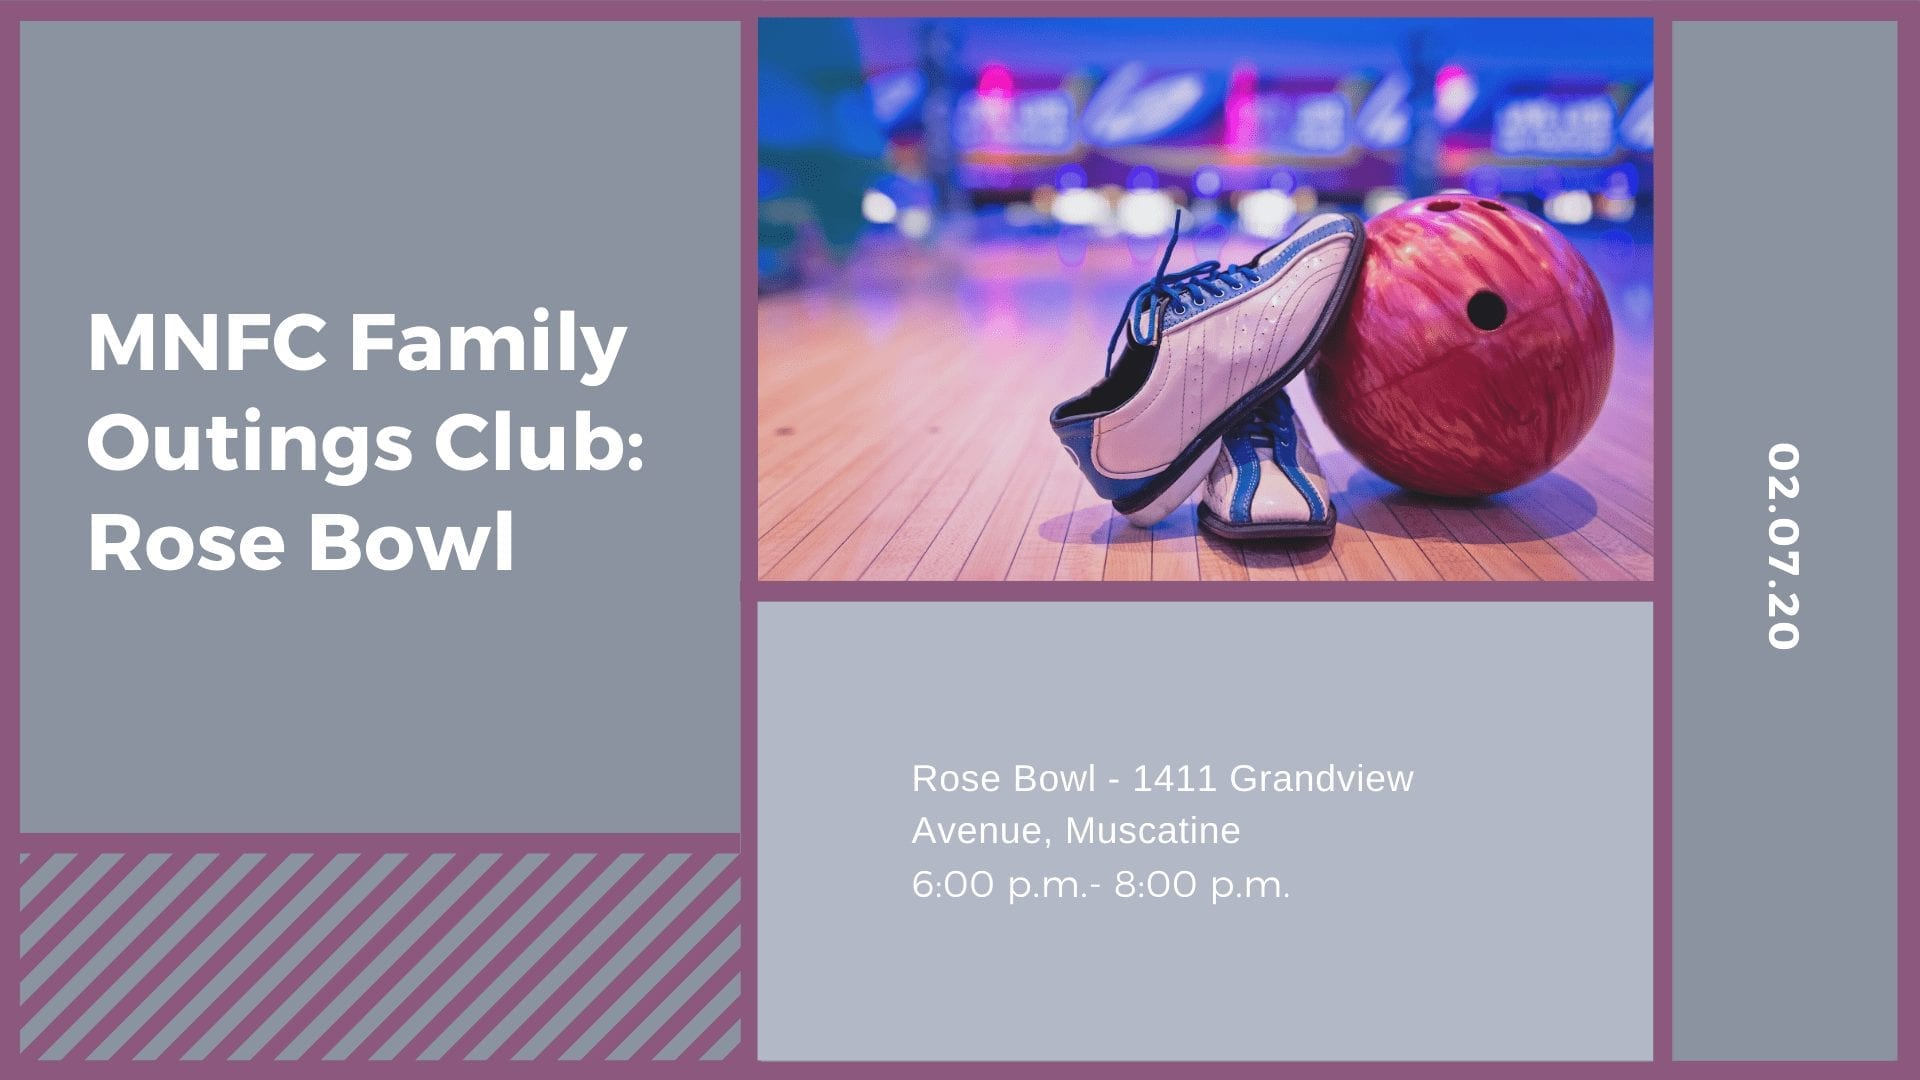 MNFC Family Outings Club: Rose Bowl